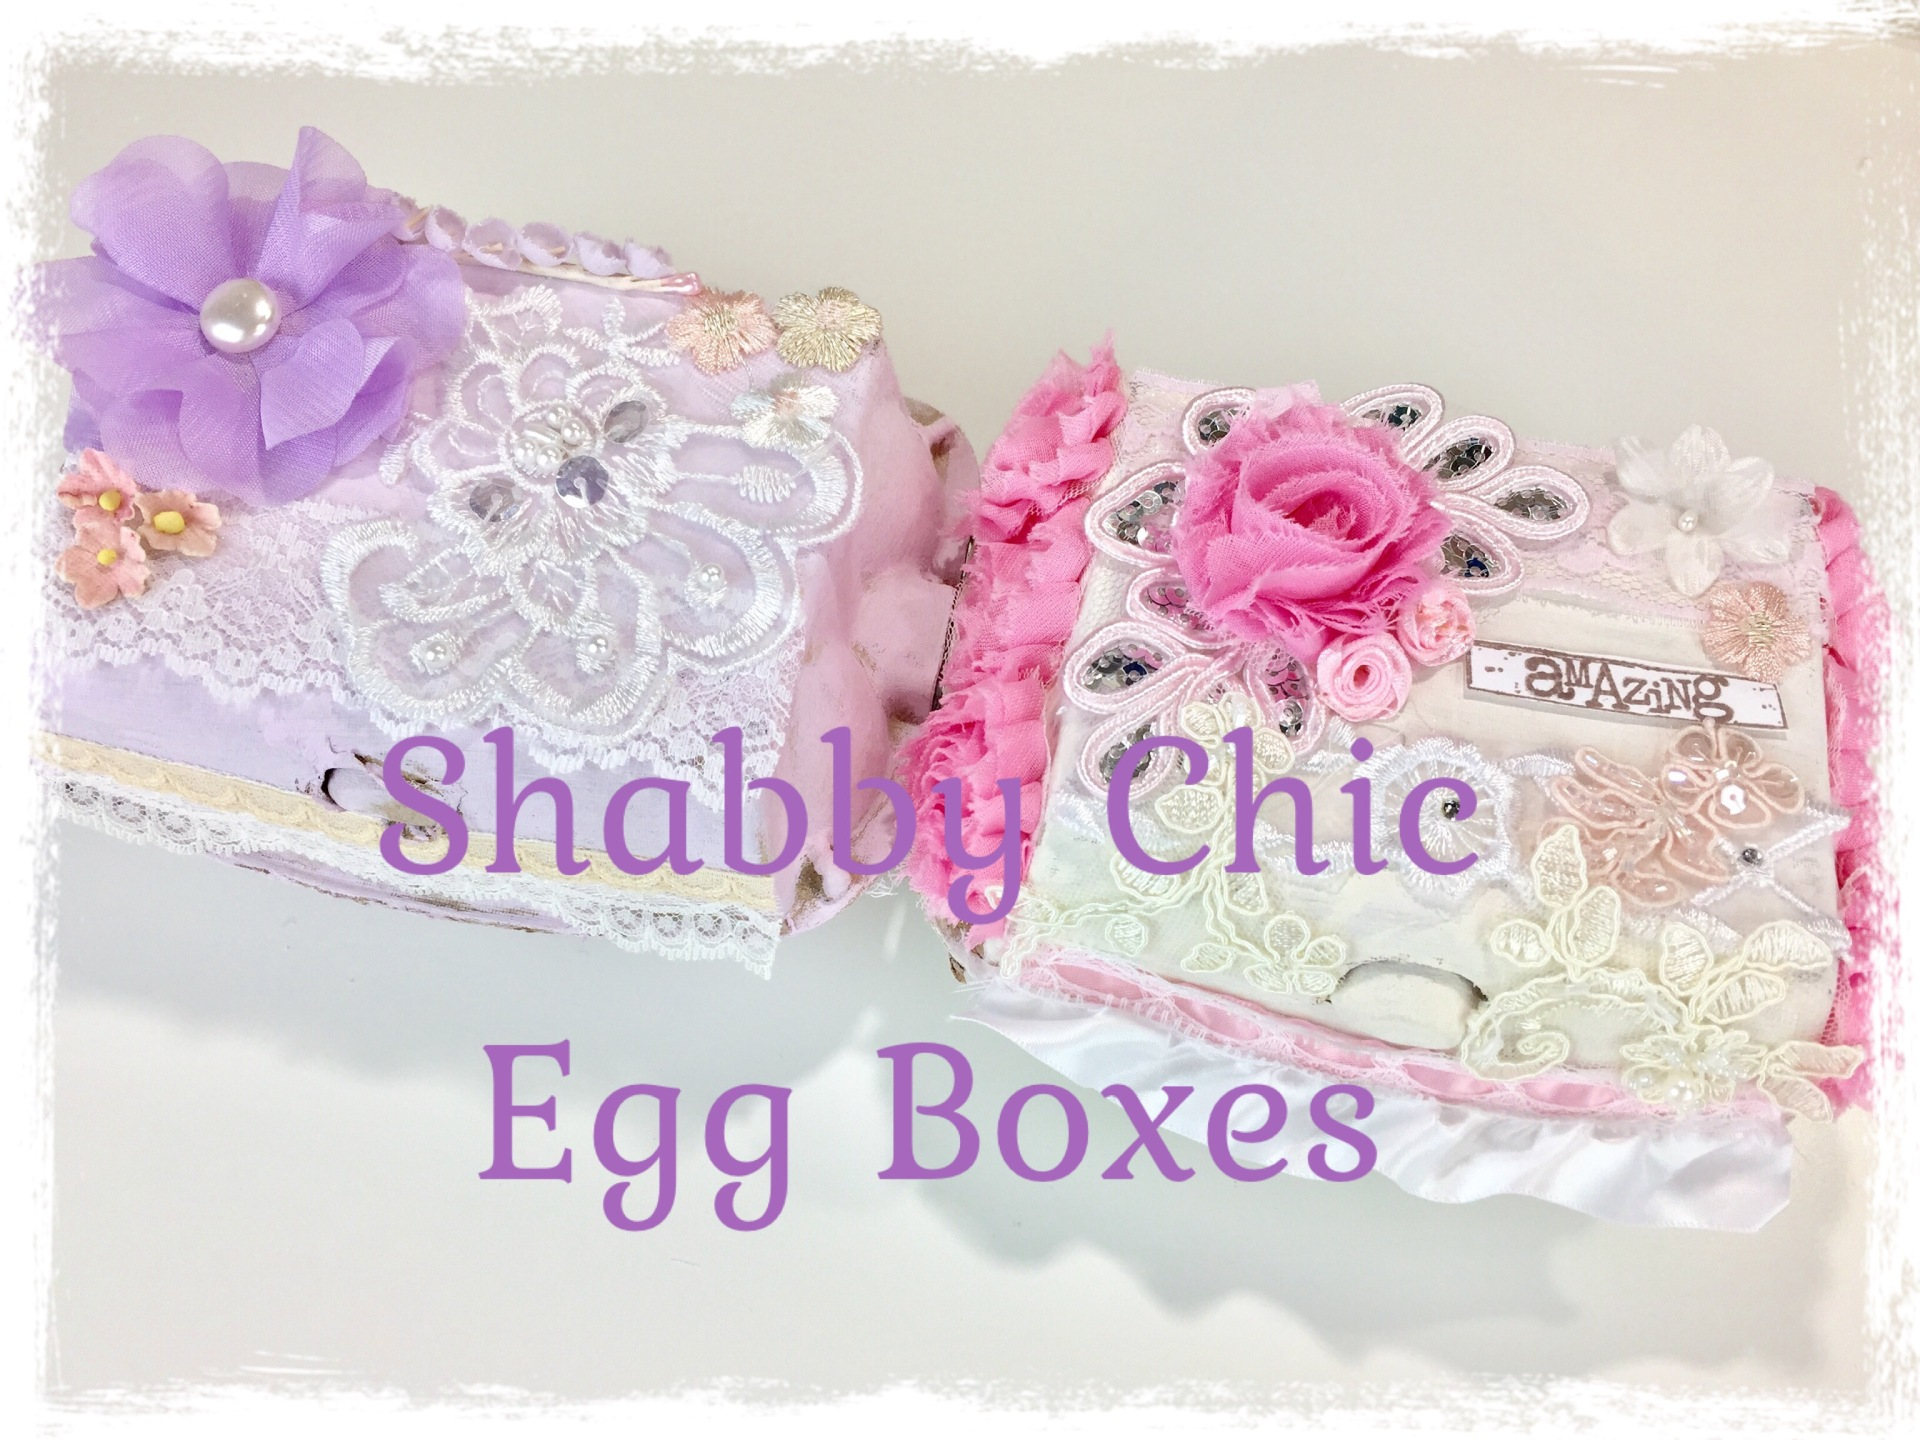 Shabby Chic Egg Boxes